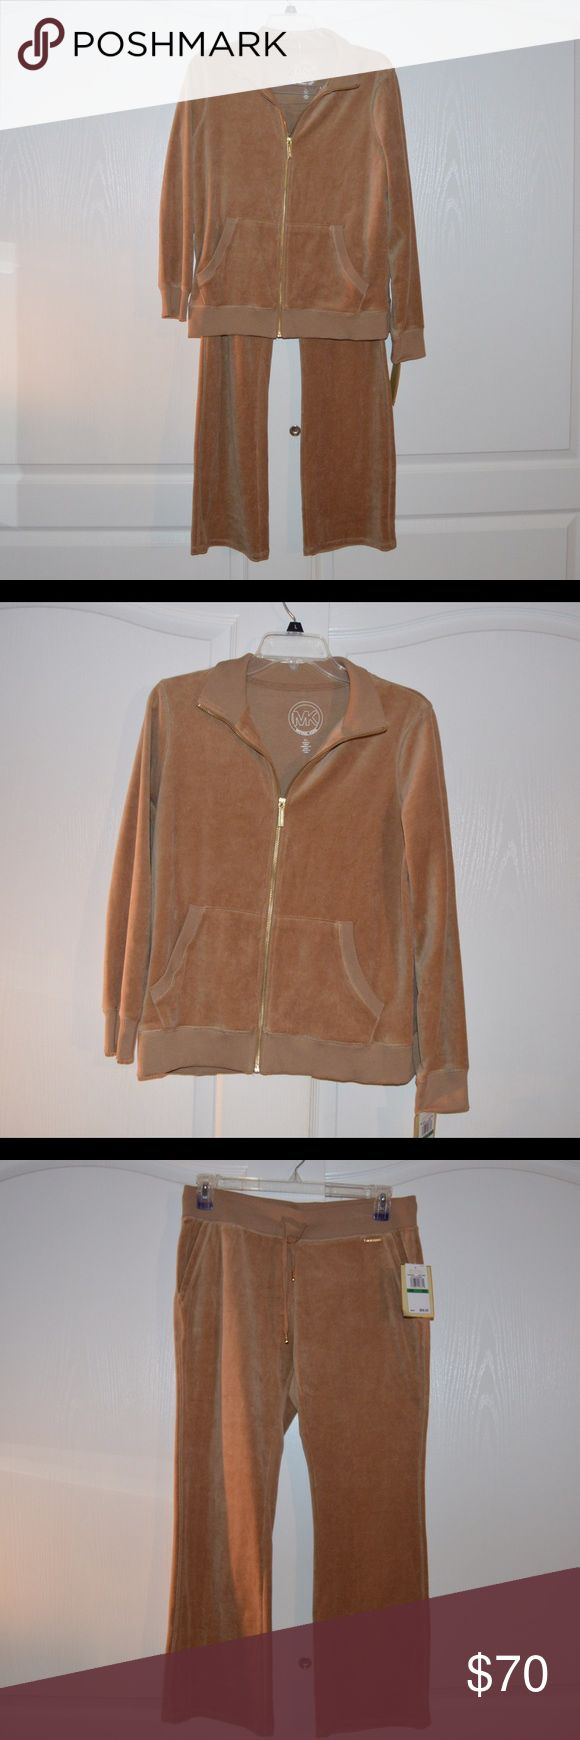 """Michael Kors SweatSuit in Dark Camel (Large) Michael Kors Sweatsuit in Dark Camel  --NEW WITH TAGS -will sell separately if needed *SIZE PETITE LARGE* -Sleek and casual zip-up in soft velour Mock neckline Zip front with gold Long sleeves Kangaroo pocket About 23"""" from shoulder to hem Cotton/polyester Michael Kors Tops Sweatshirts & Hoodies"""